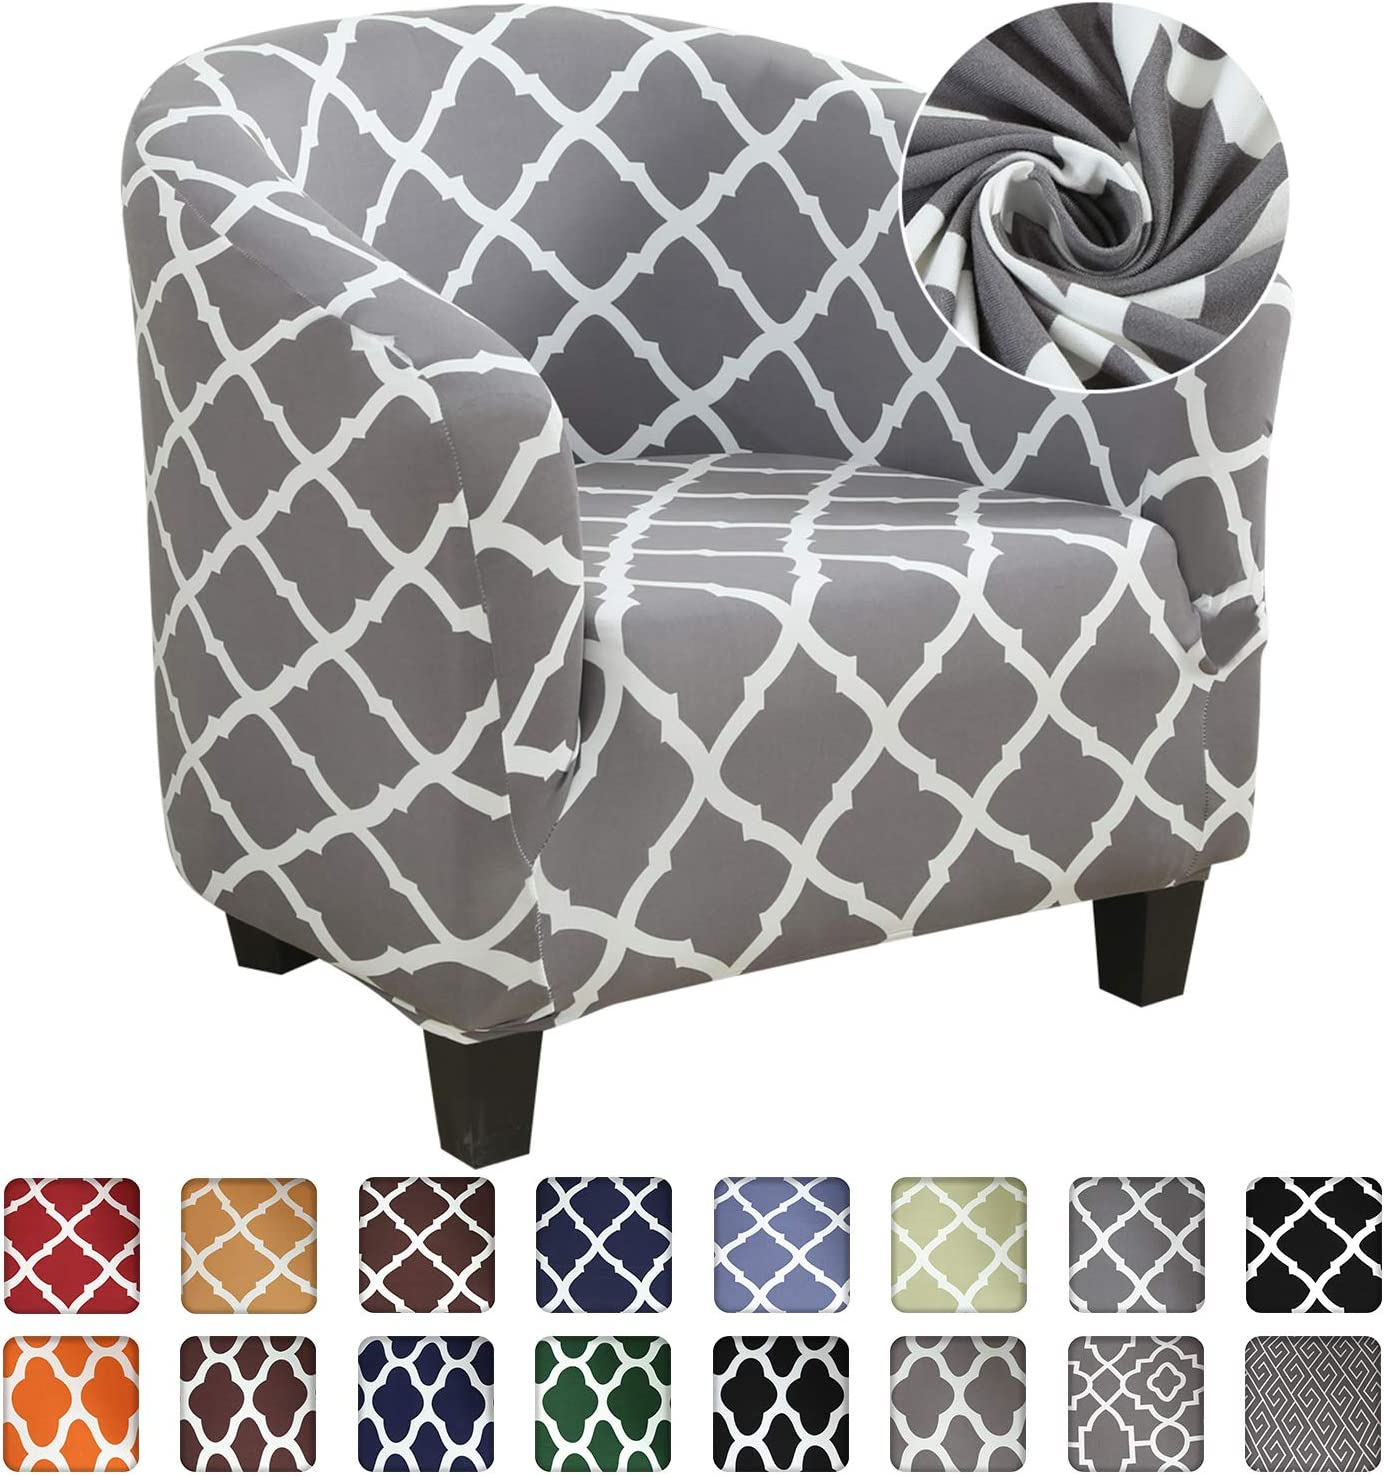 SearchI Club Chair Slipcover,Stretch Spandex Removable Geometric Pattern Armchair Covers, Sofa Cover Furniture Protector for Living Room Arm Chair Cover Geometric Couch Covers: Furniture & Decor